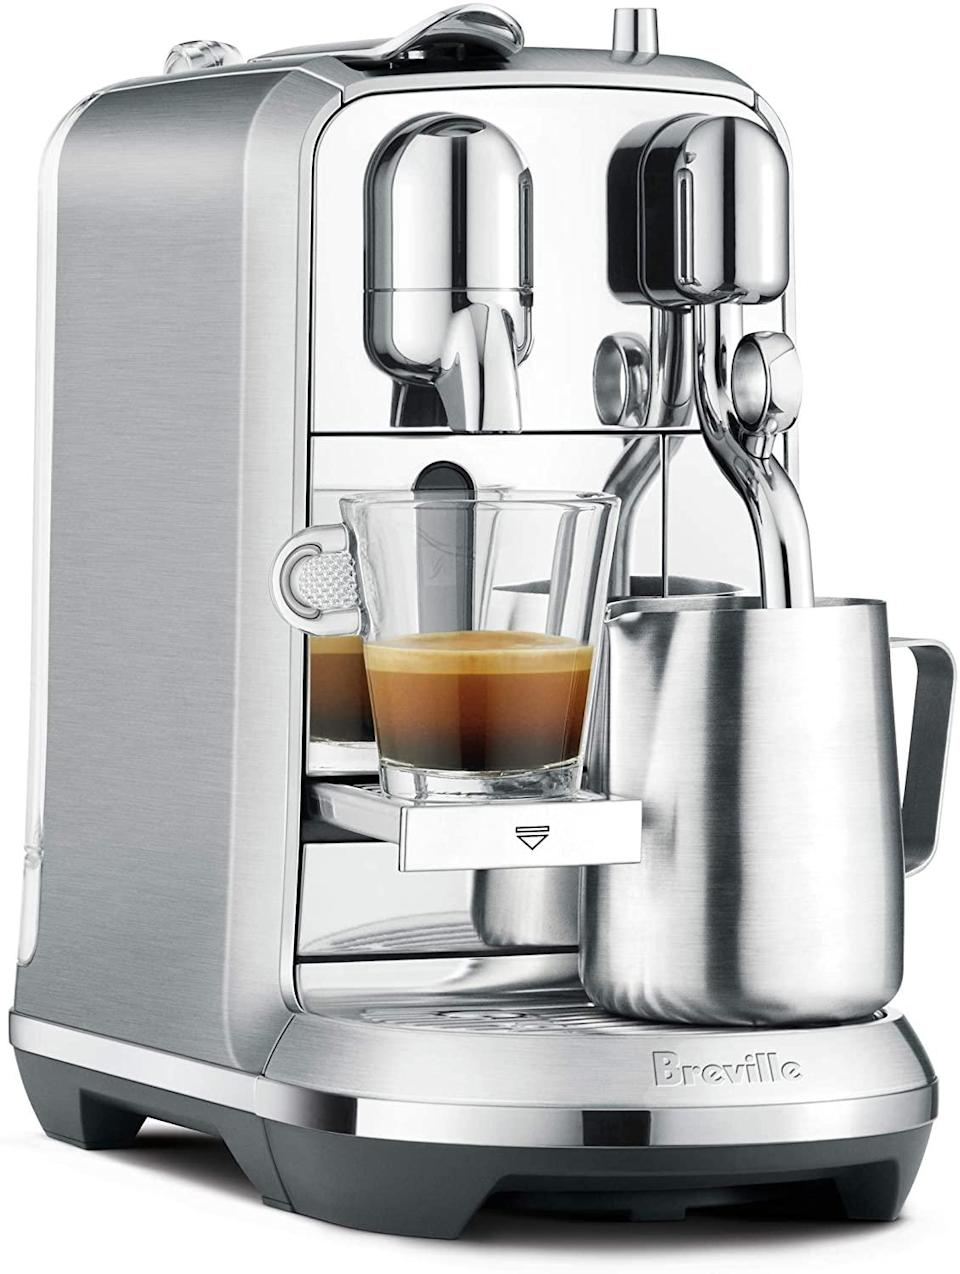 nespresso machine fancy breville